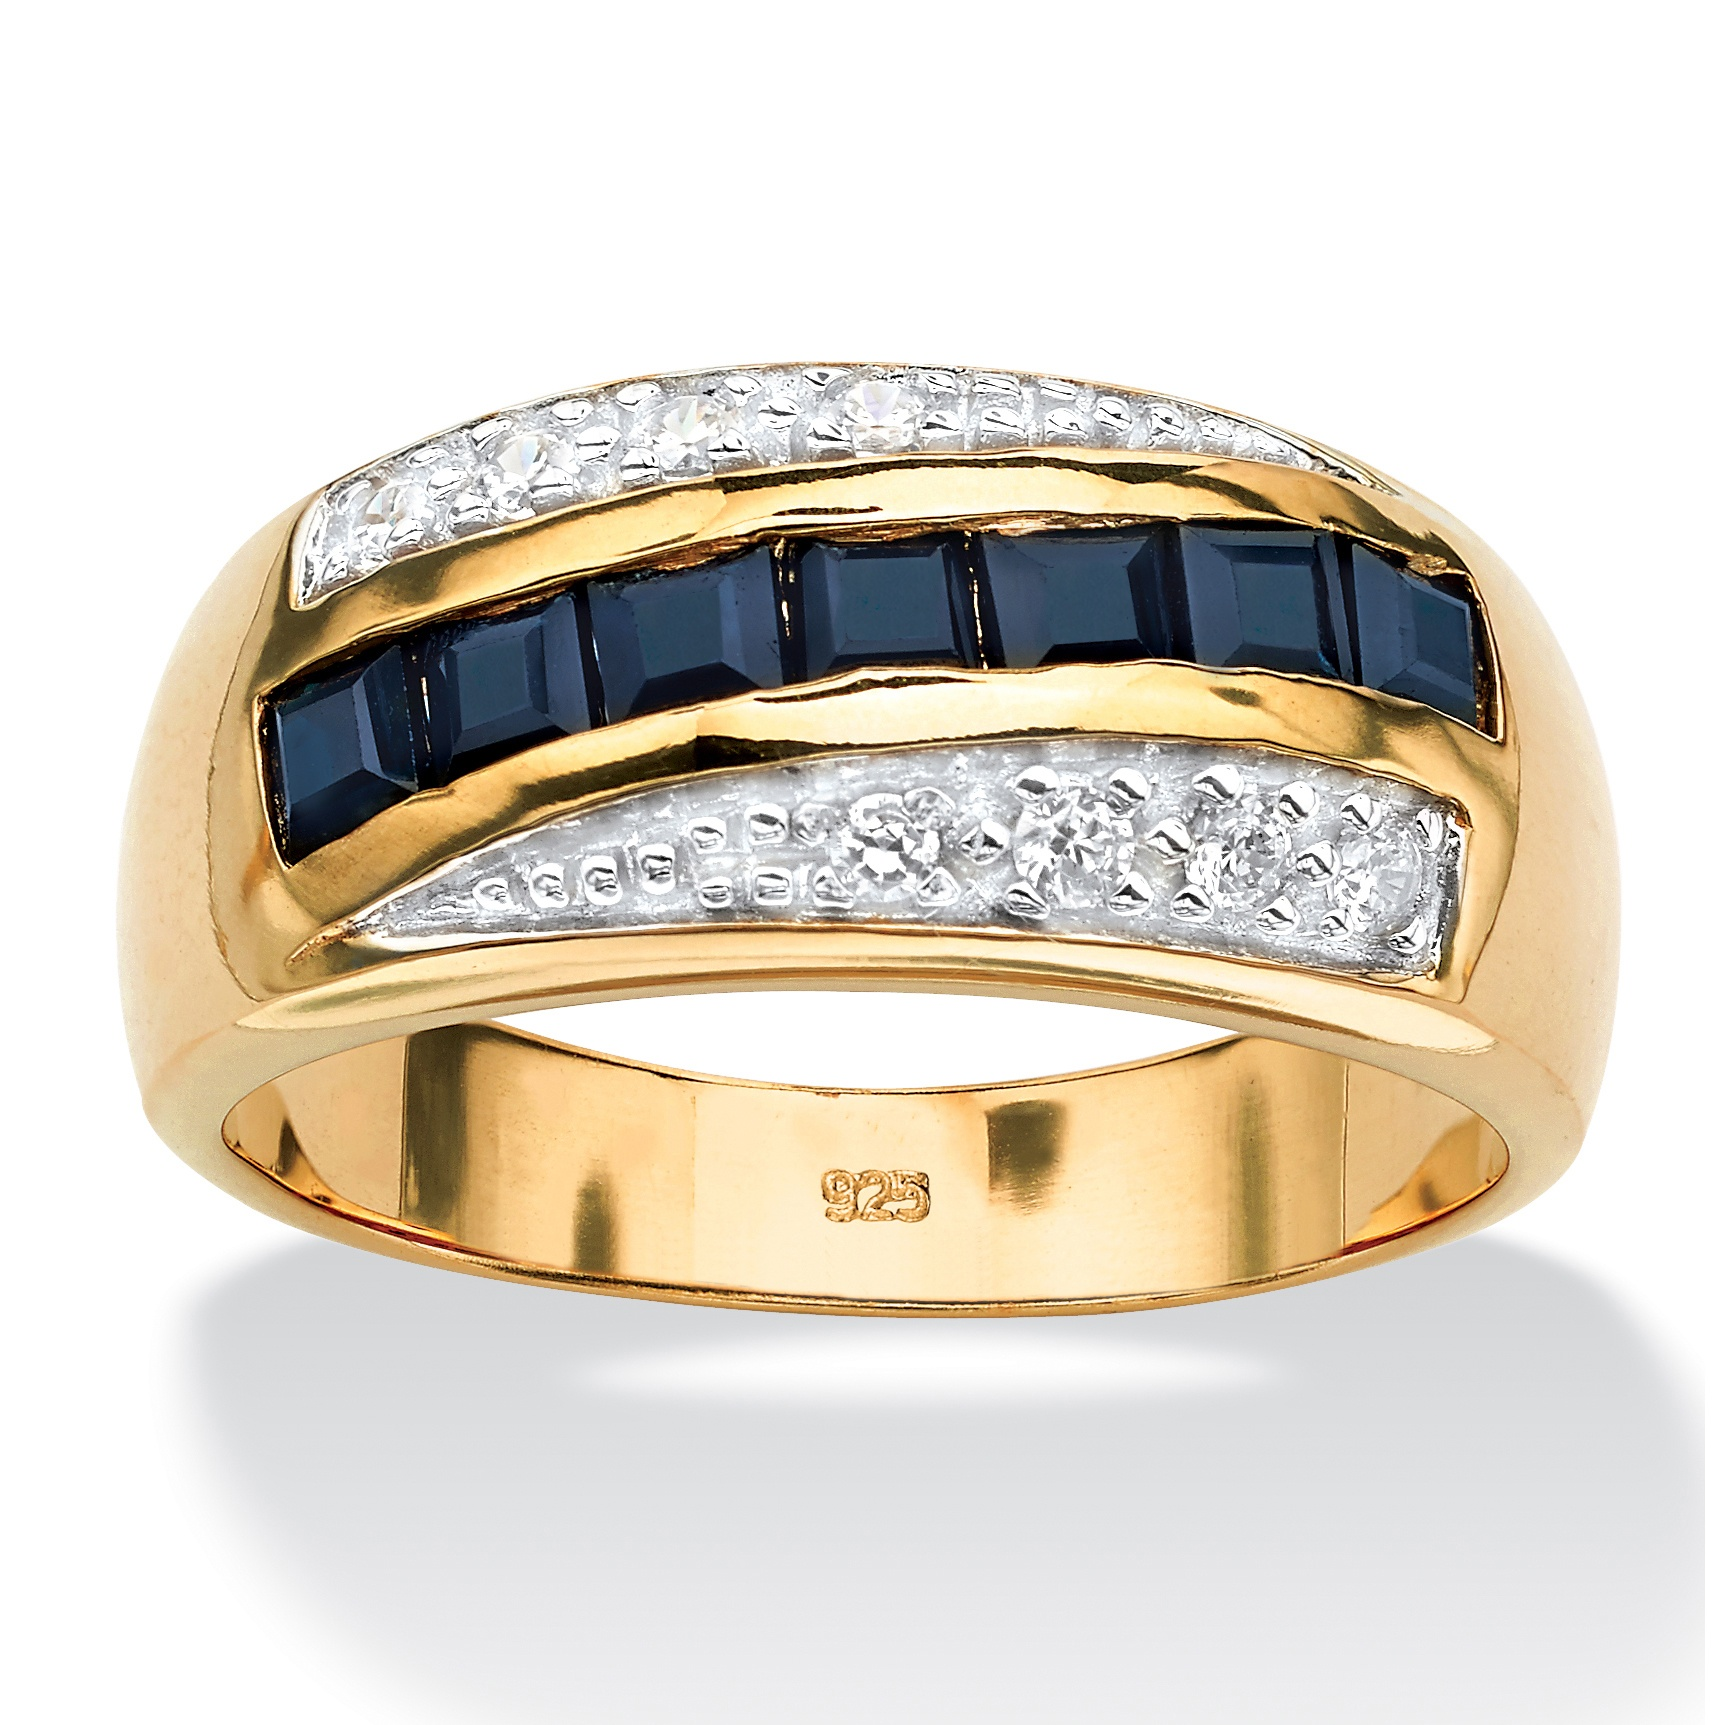 palmbeach jewelry men 39 s 1 95 tcw sapphire cz ring 18k gold. Black Bedroom Furniture Sets. Home Design Ideas